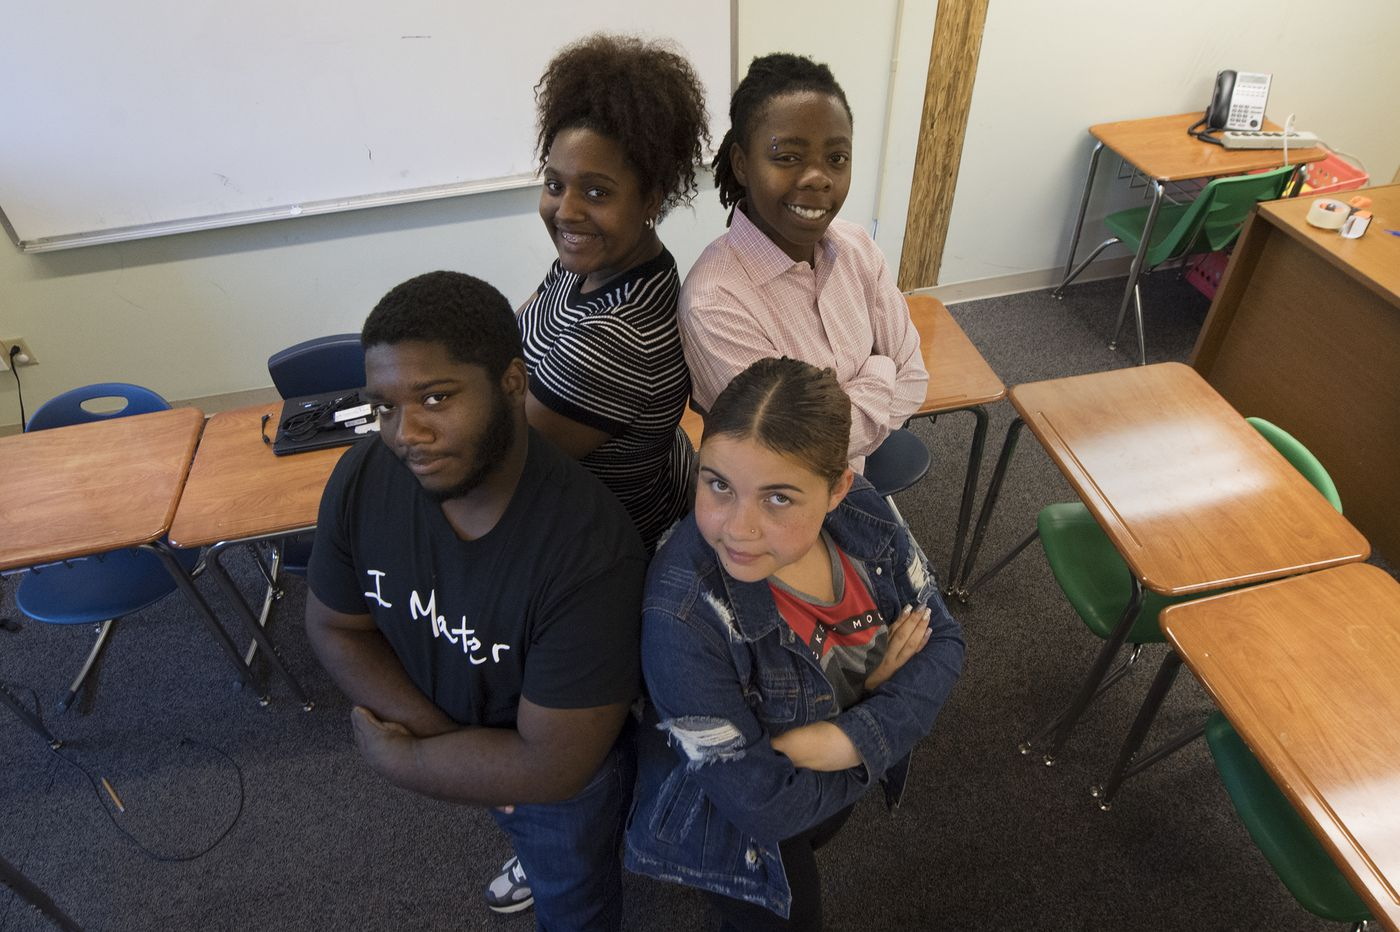 School's out, but these foster kids don't want to leave | Ronnie Polaneczky